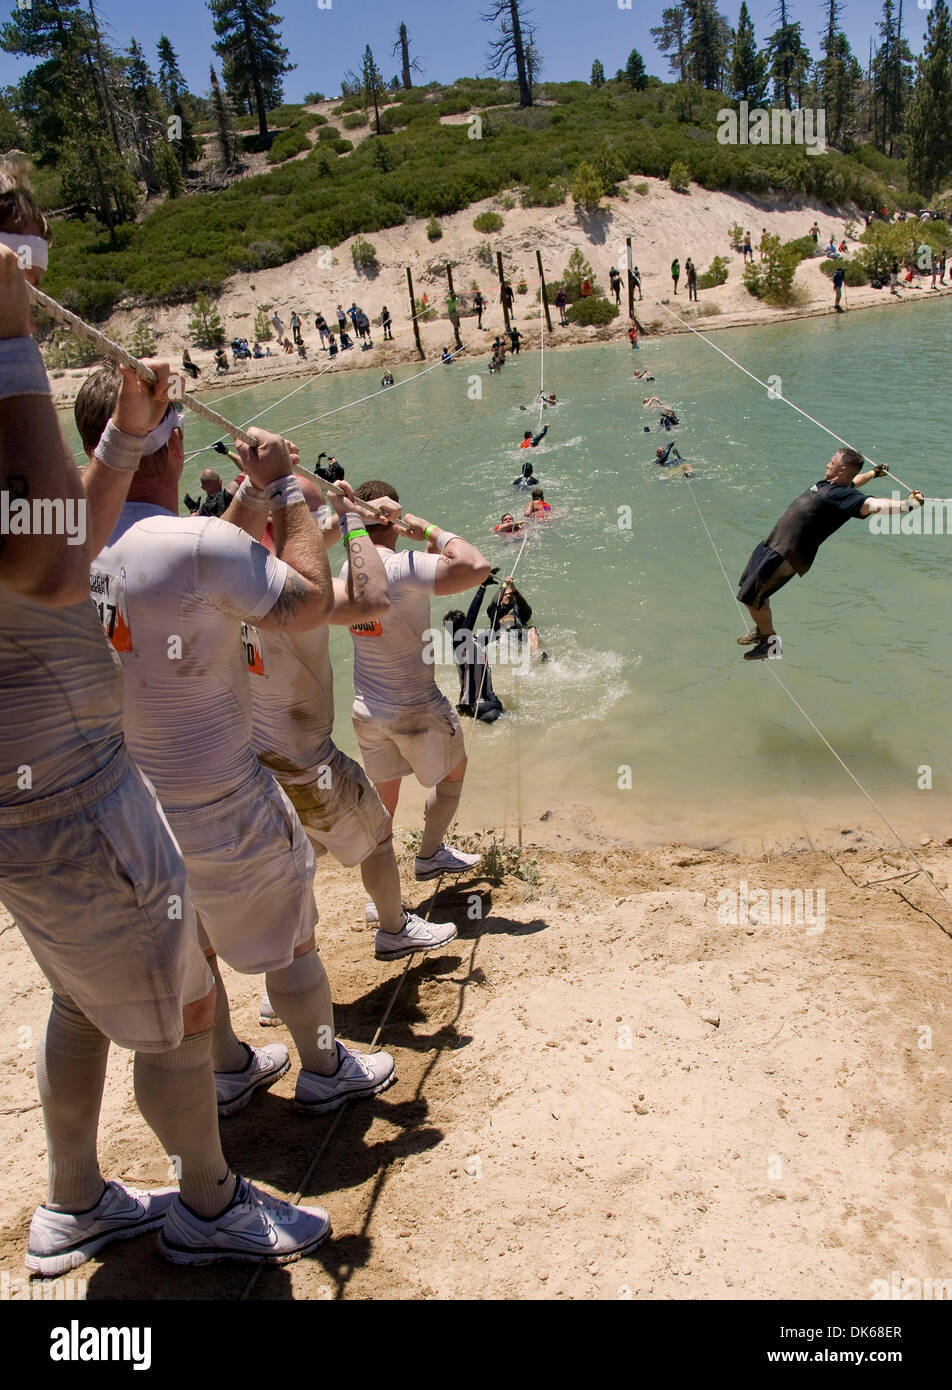 May 28, 2011 - Running Springs, CA, USA - Participants in Tough Mudder Southern California negotiate 'Walk the Plank,' one of the 23 obstacles on the 10- mile course built by British Special Forces.  Tough Mudder is billed as ''probably the toughest event on the planet.(Credit Image: © Brian Cahn/ZUMAPRESS.com) - Stock Image